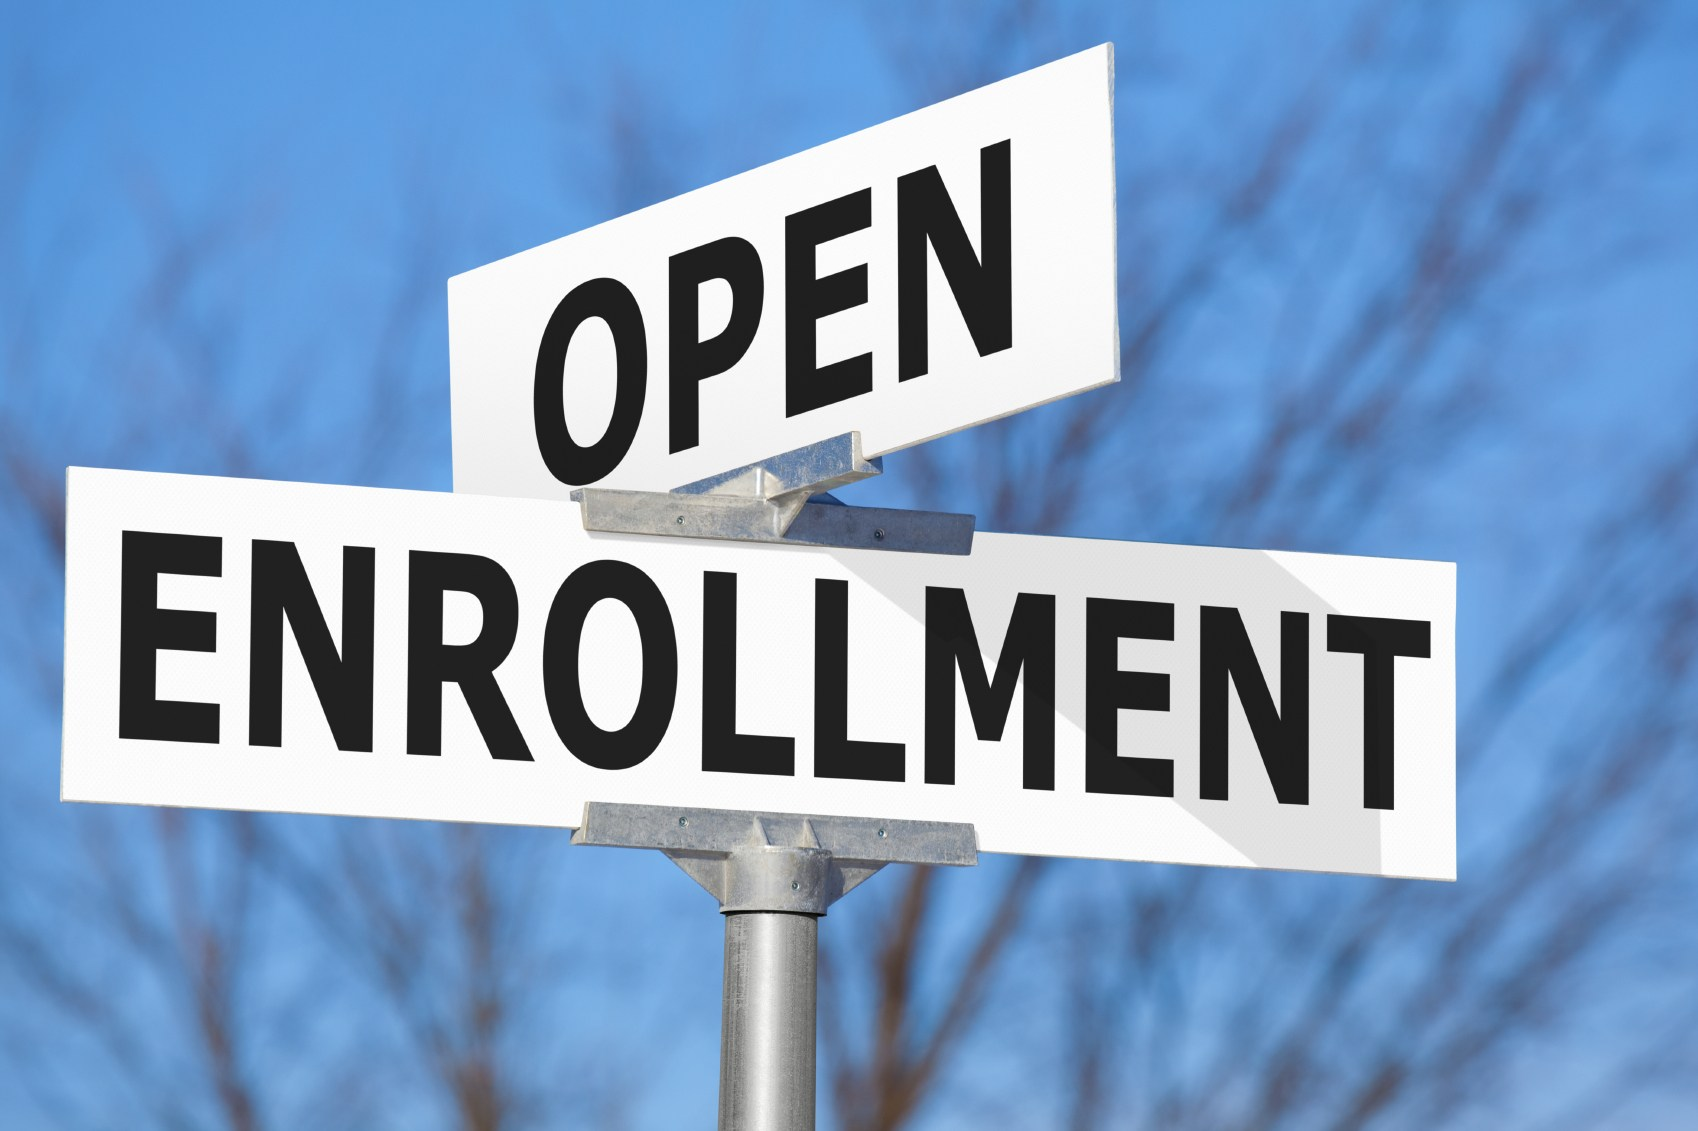 Open Enrollment Application 2018 Image